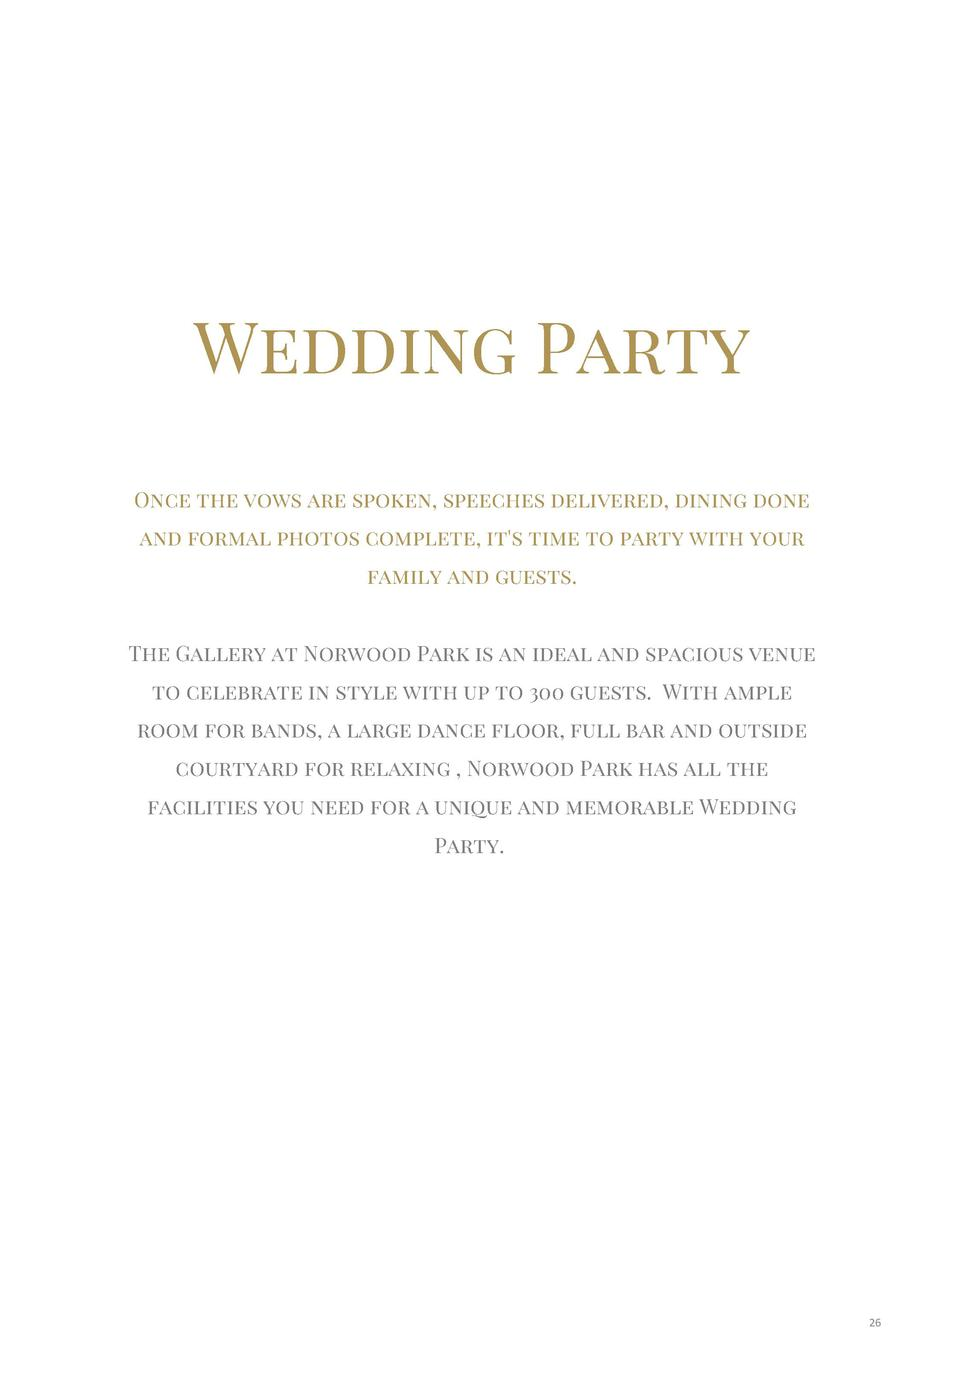 Wedding Party Once the vows are spoken, speeches delivered, dining done and formal photos complete, it s time to party wit...